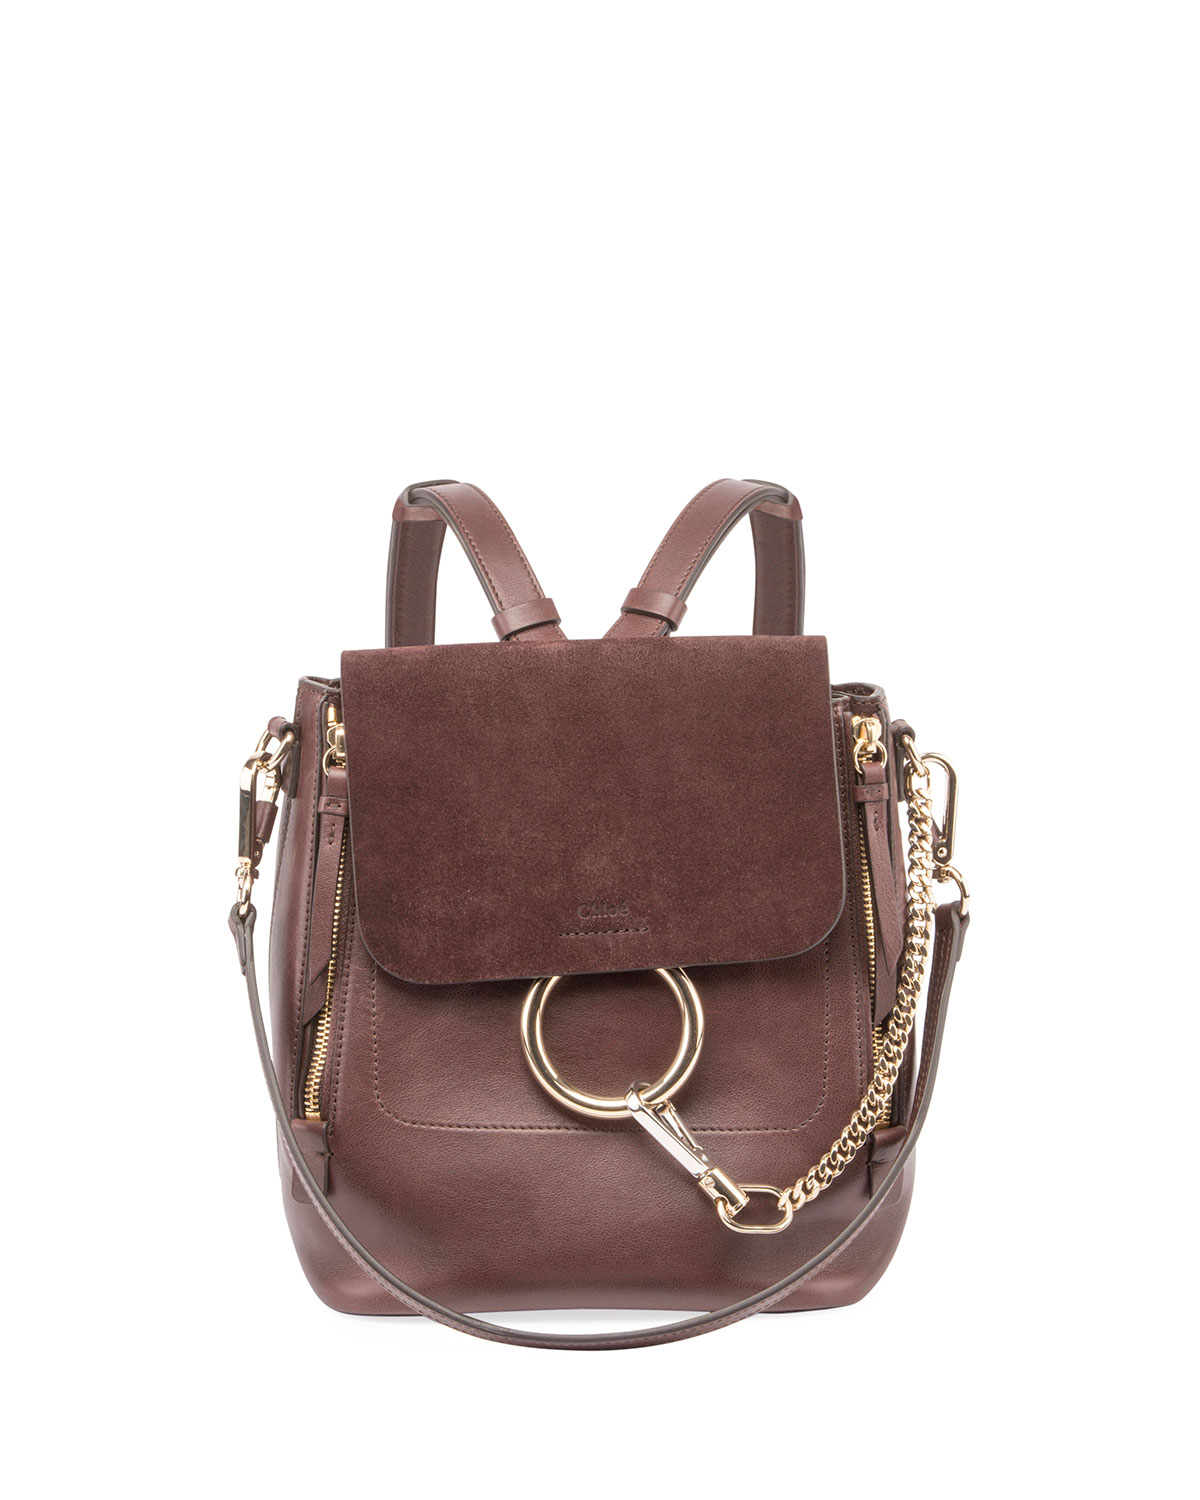 Chloe Faye Small Leather Suede Backpack  ab99dae889478